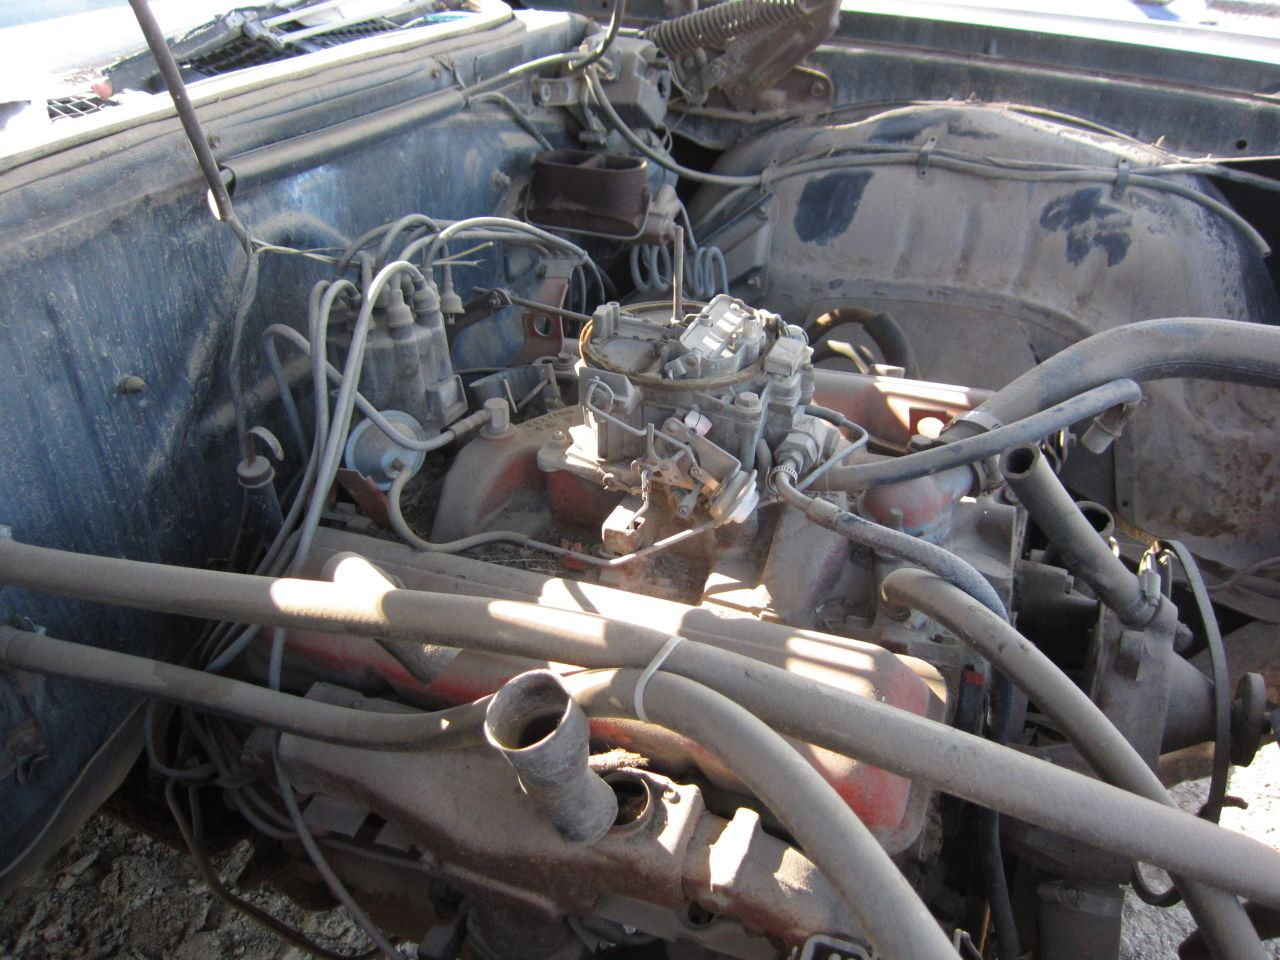 2008 Chevy Impala Reviews >> Junkyard Find: 1969 Chevrolet Impala - The Truth About Cars